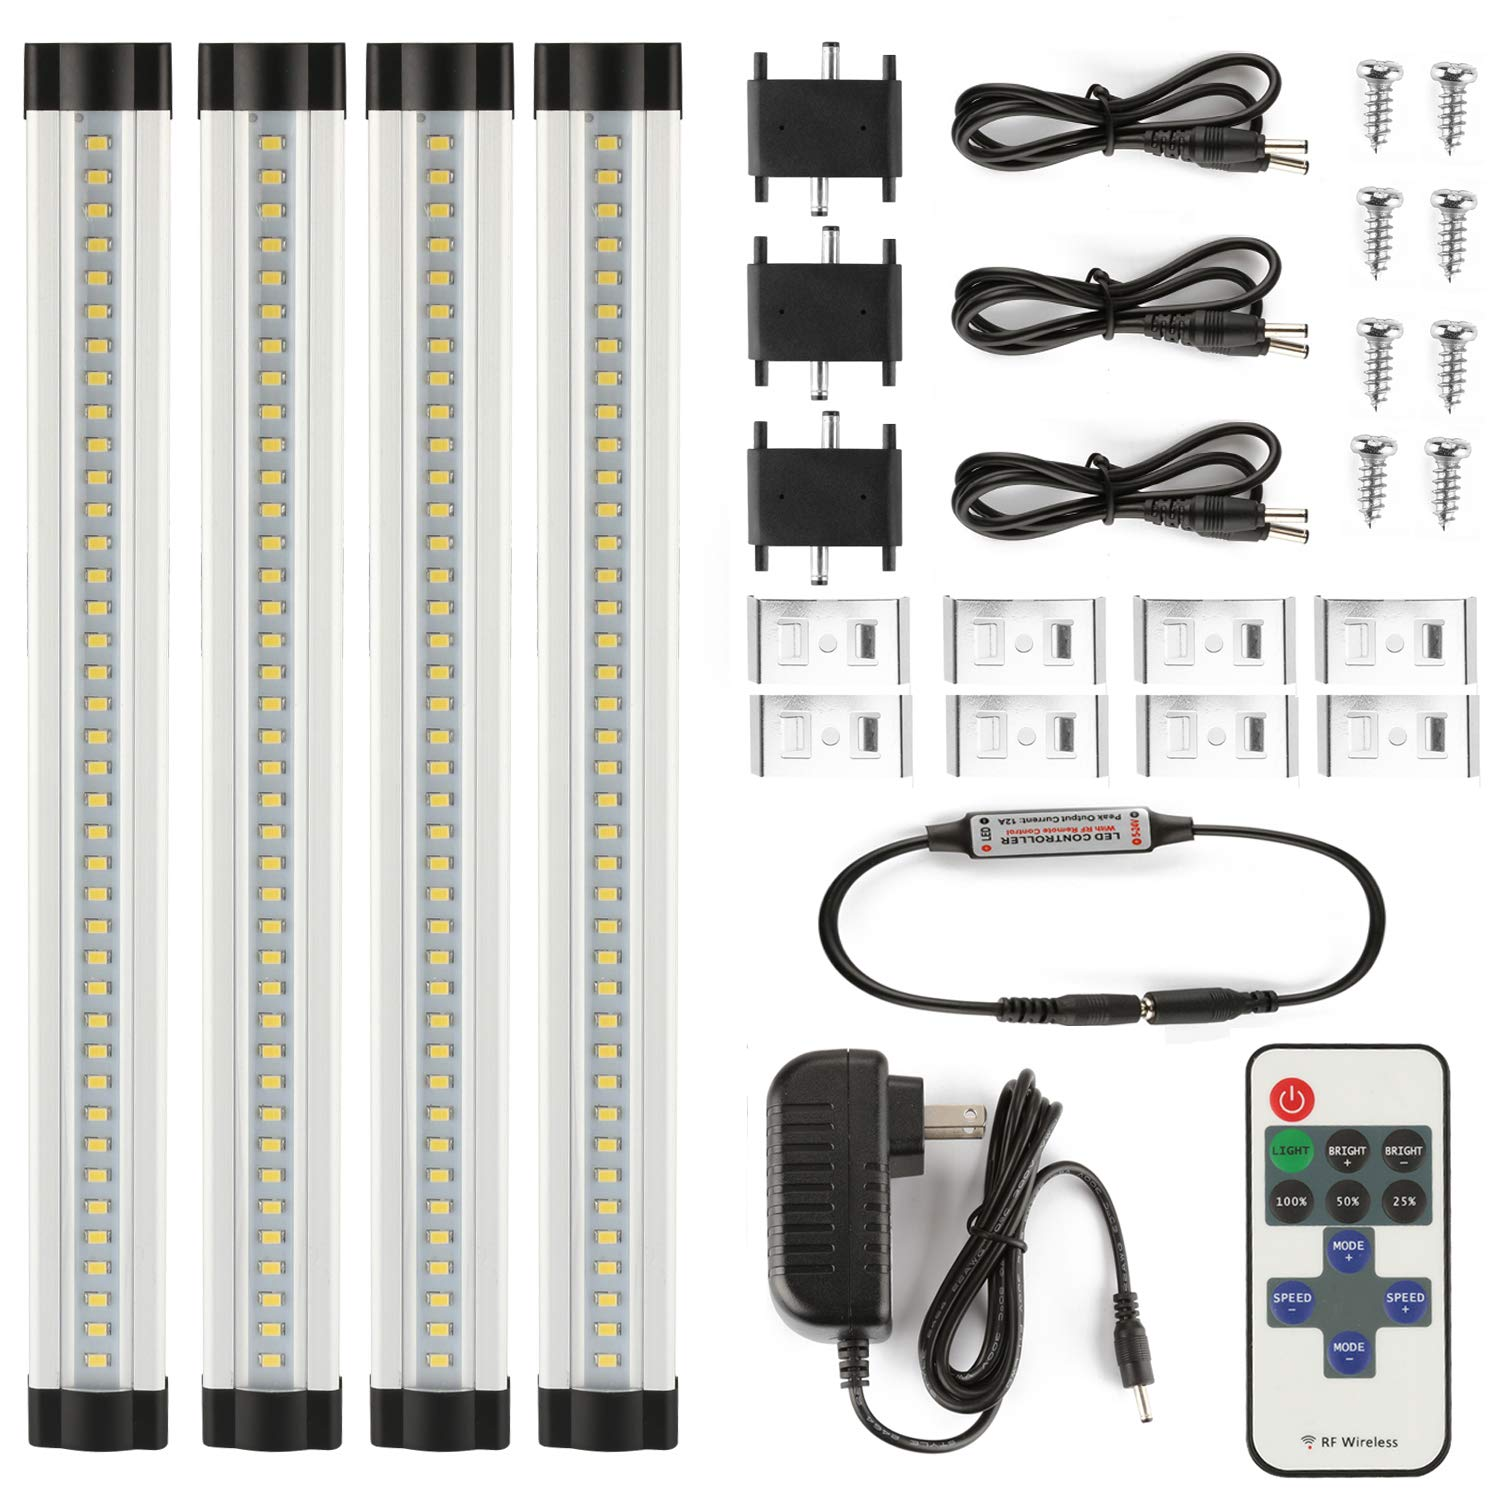 LXG 12in Dimmable LED Under Cabinet Lighting, 12W 5000K Daylight 1000LM, Clear Cover Led Strips,11key Remote Control ,4 Pack by LXG-LED